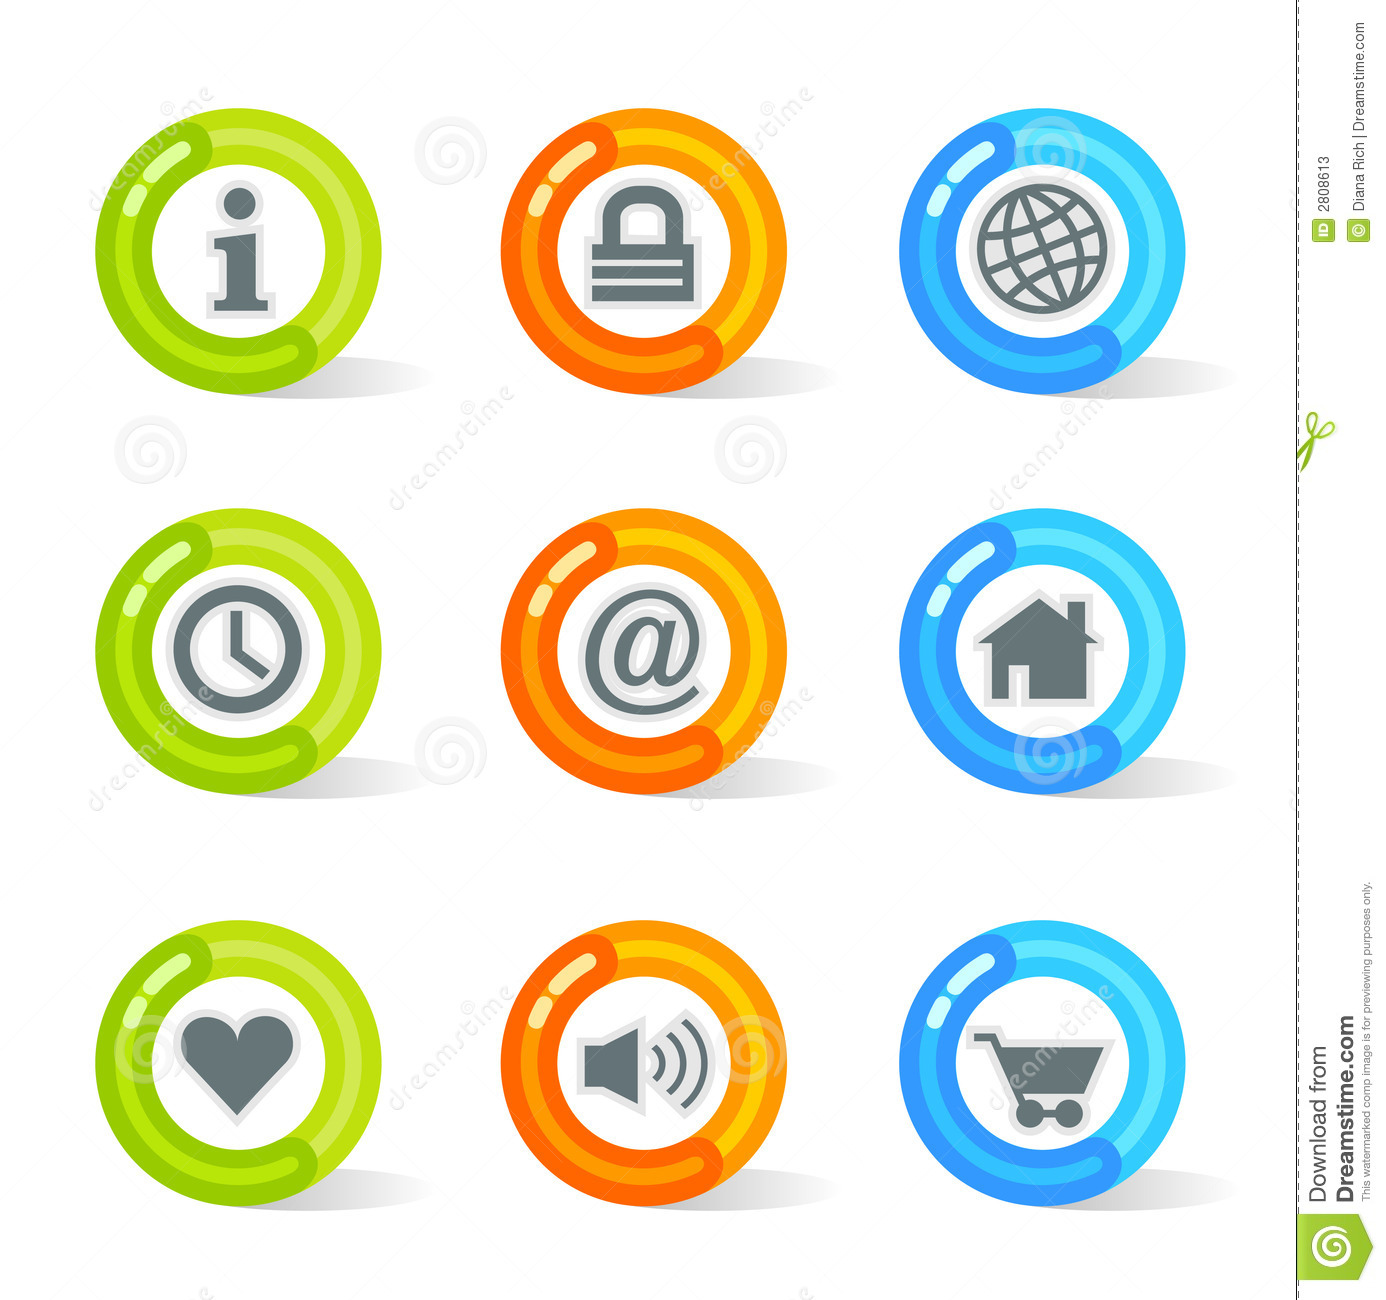 Iconos del Web del gel (vector)